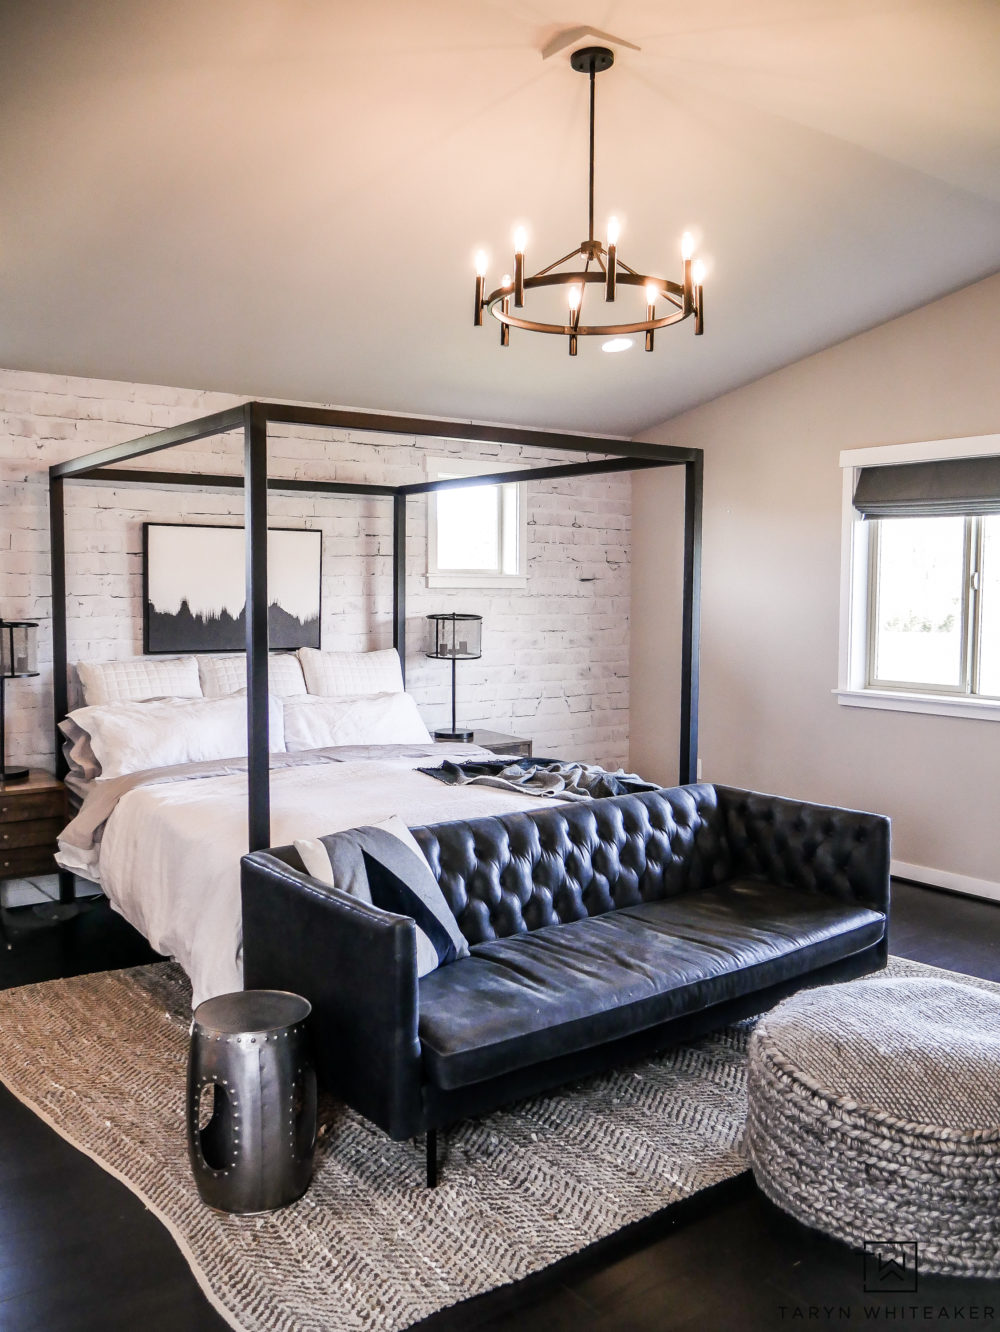 Modern industrial black and white master bedroom design with black hardwoods, canopy bed and black Chesterfield.